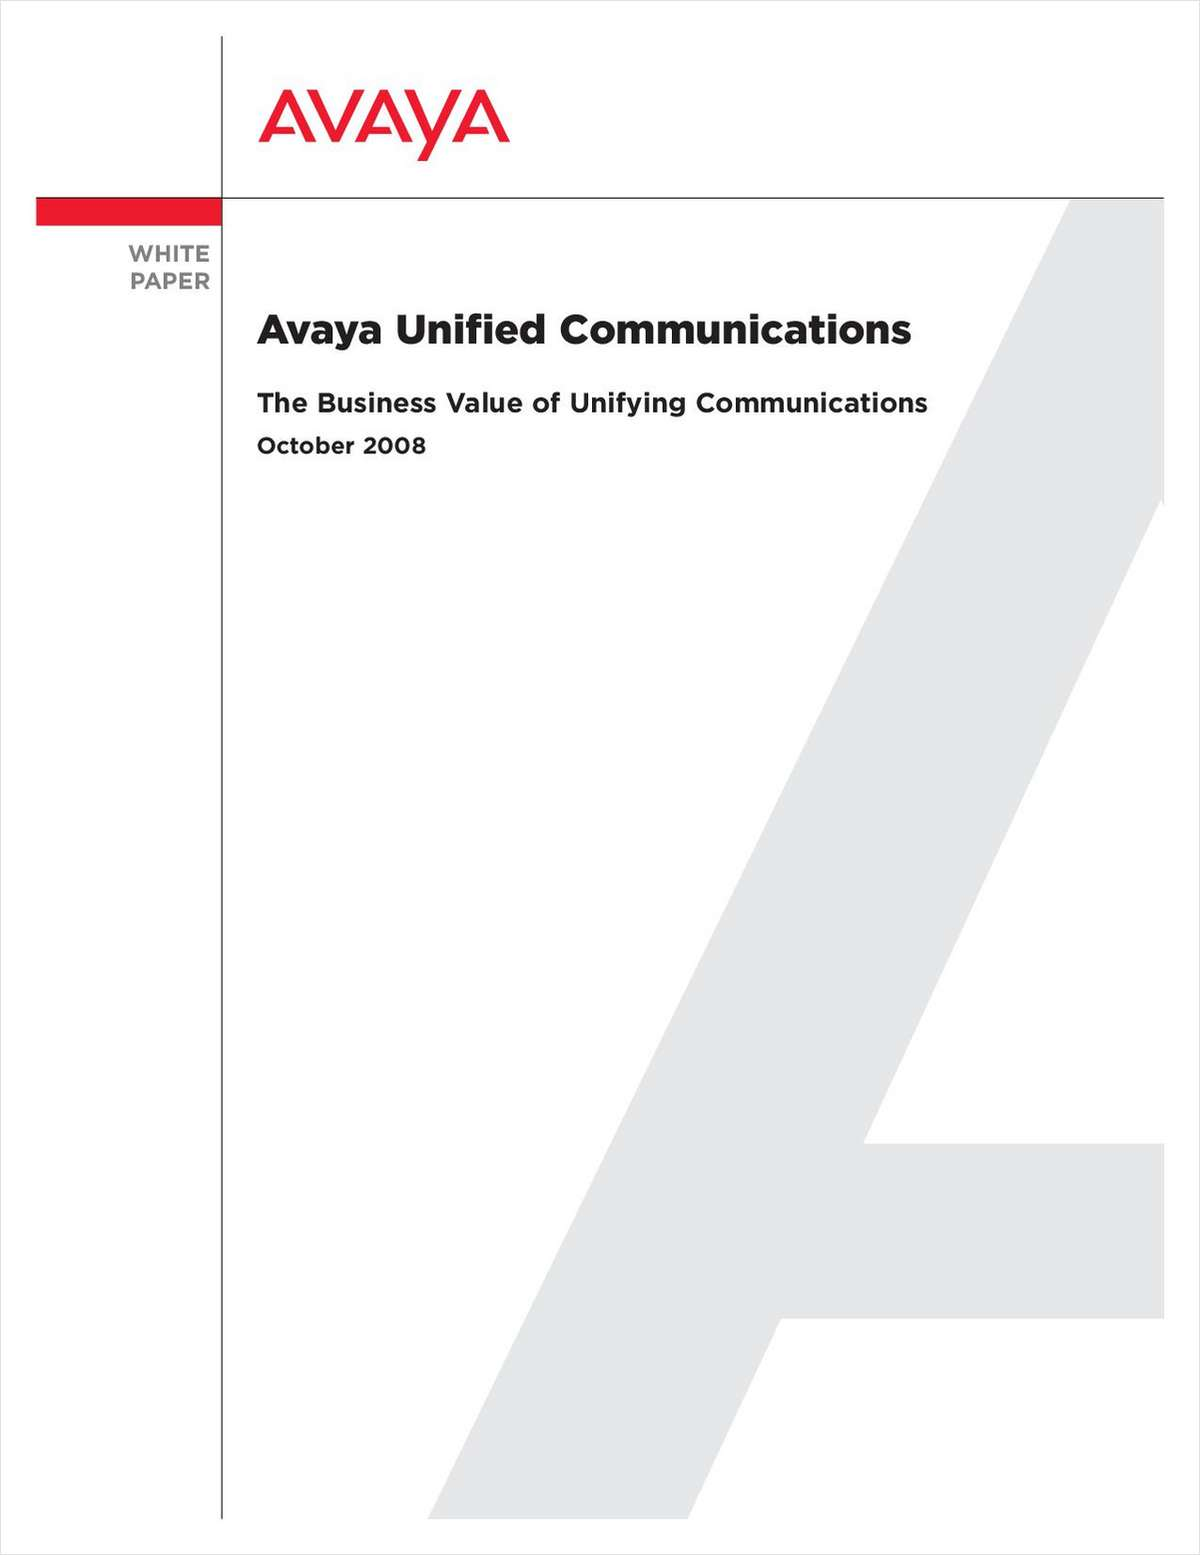 The Business Value of Unifying Communications